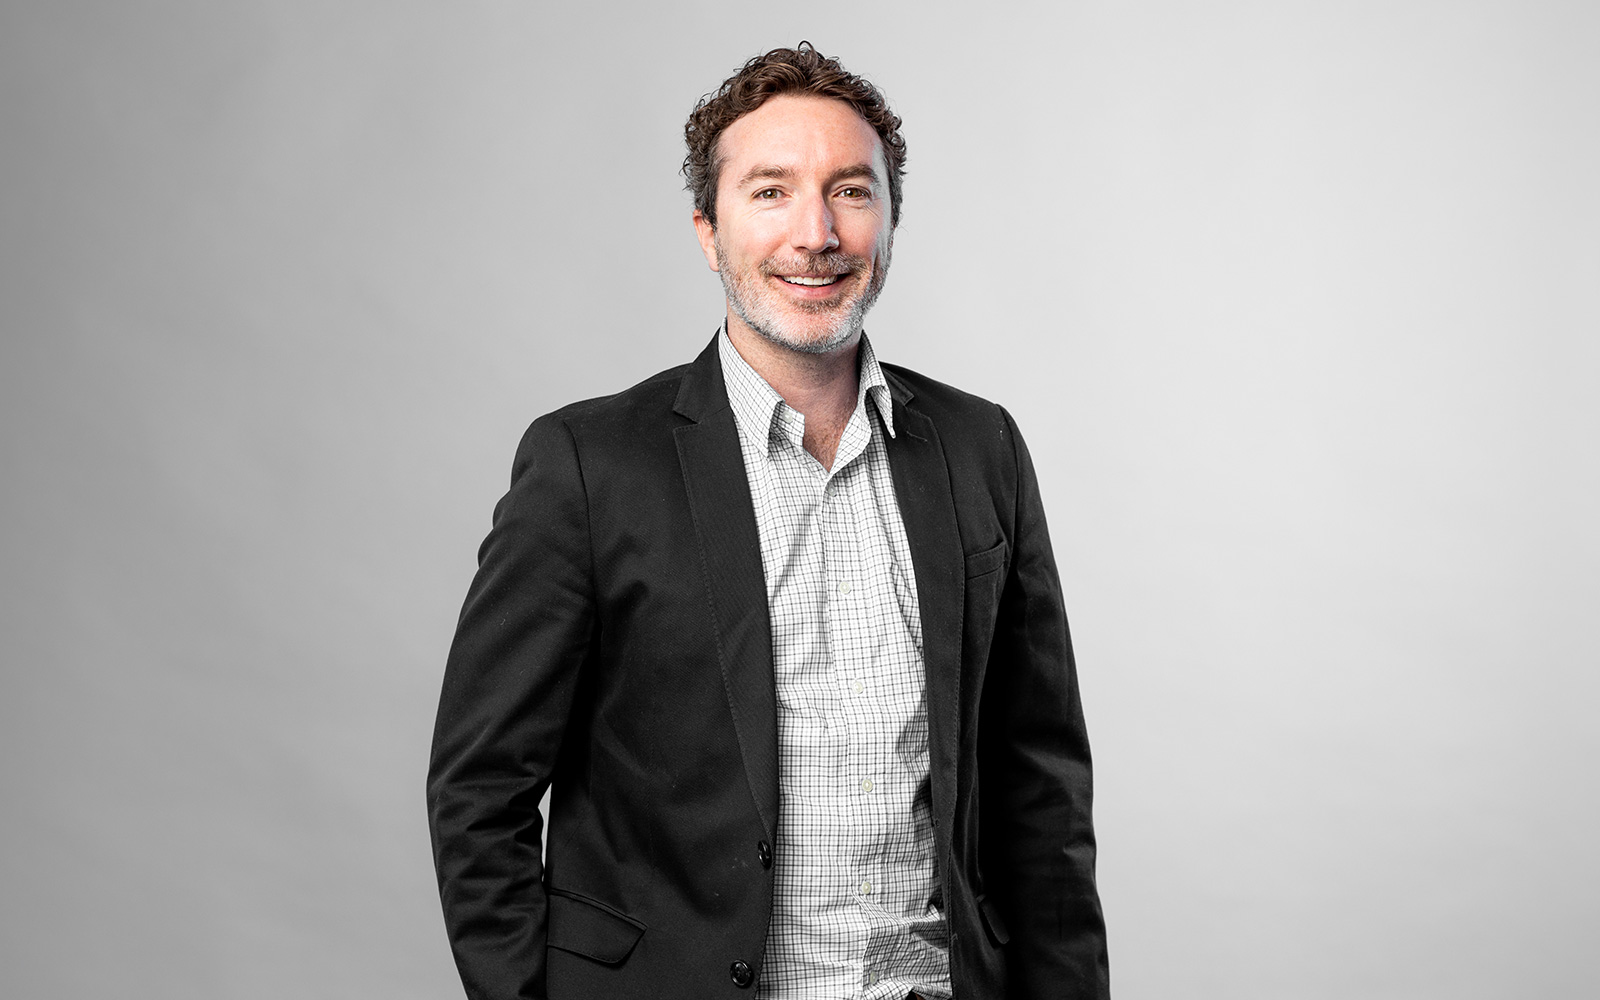 Lachlan Nimmo, Project Director